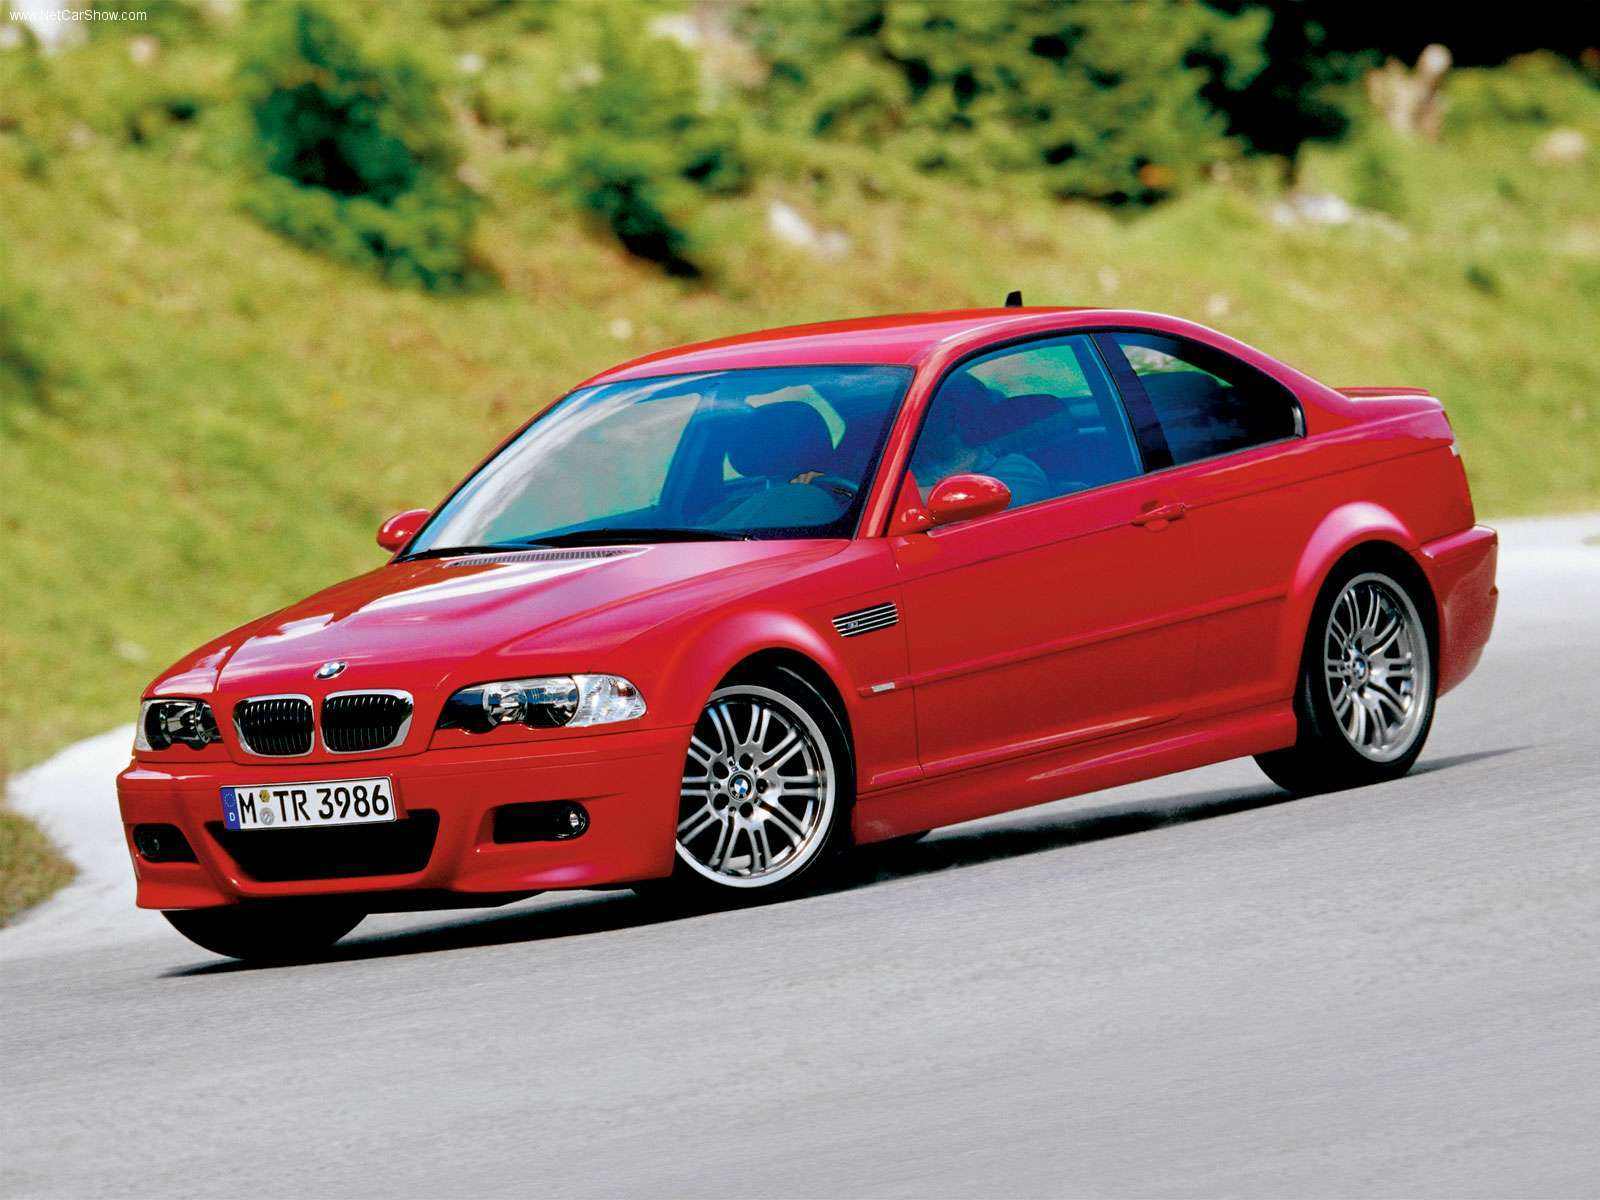 Bmw M3 E46 Pure Driving Pleasure Korn Cars